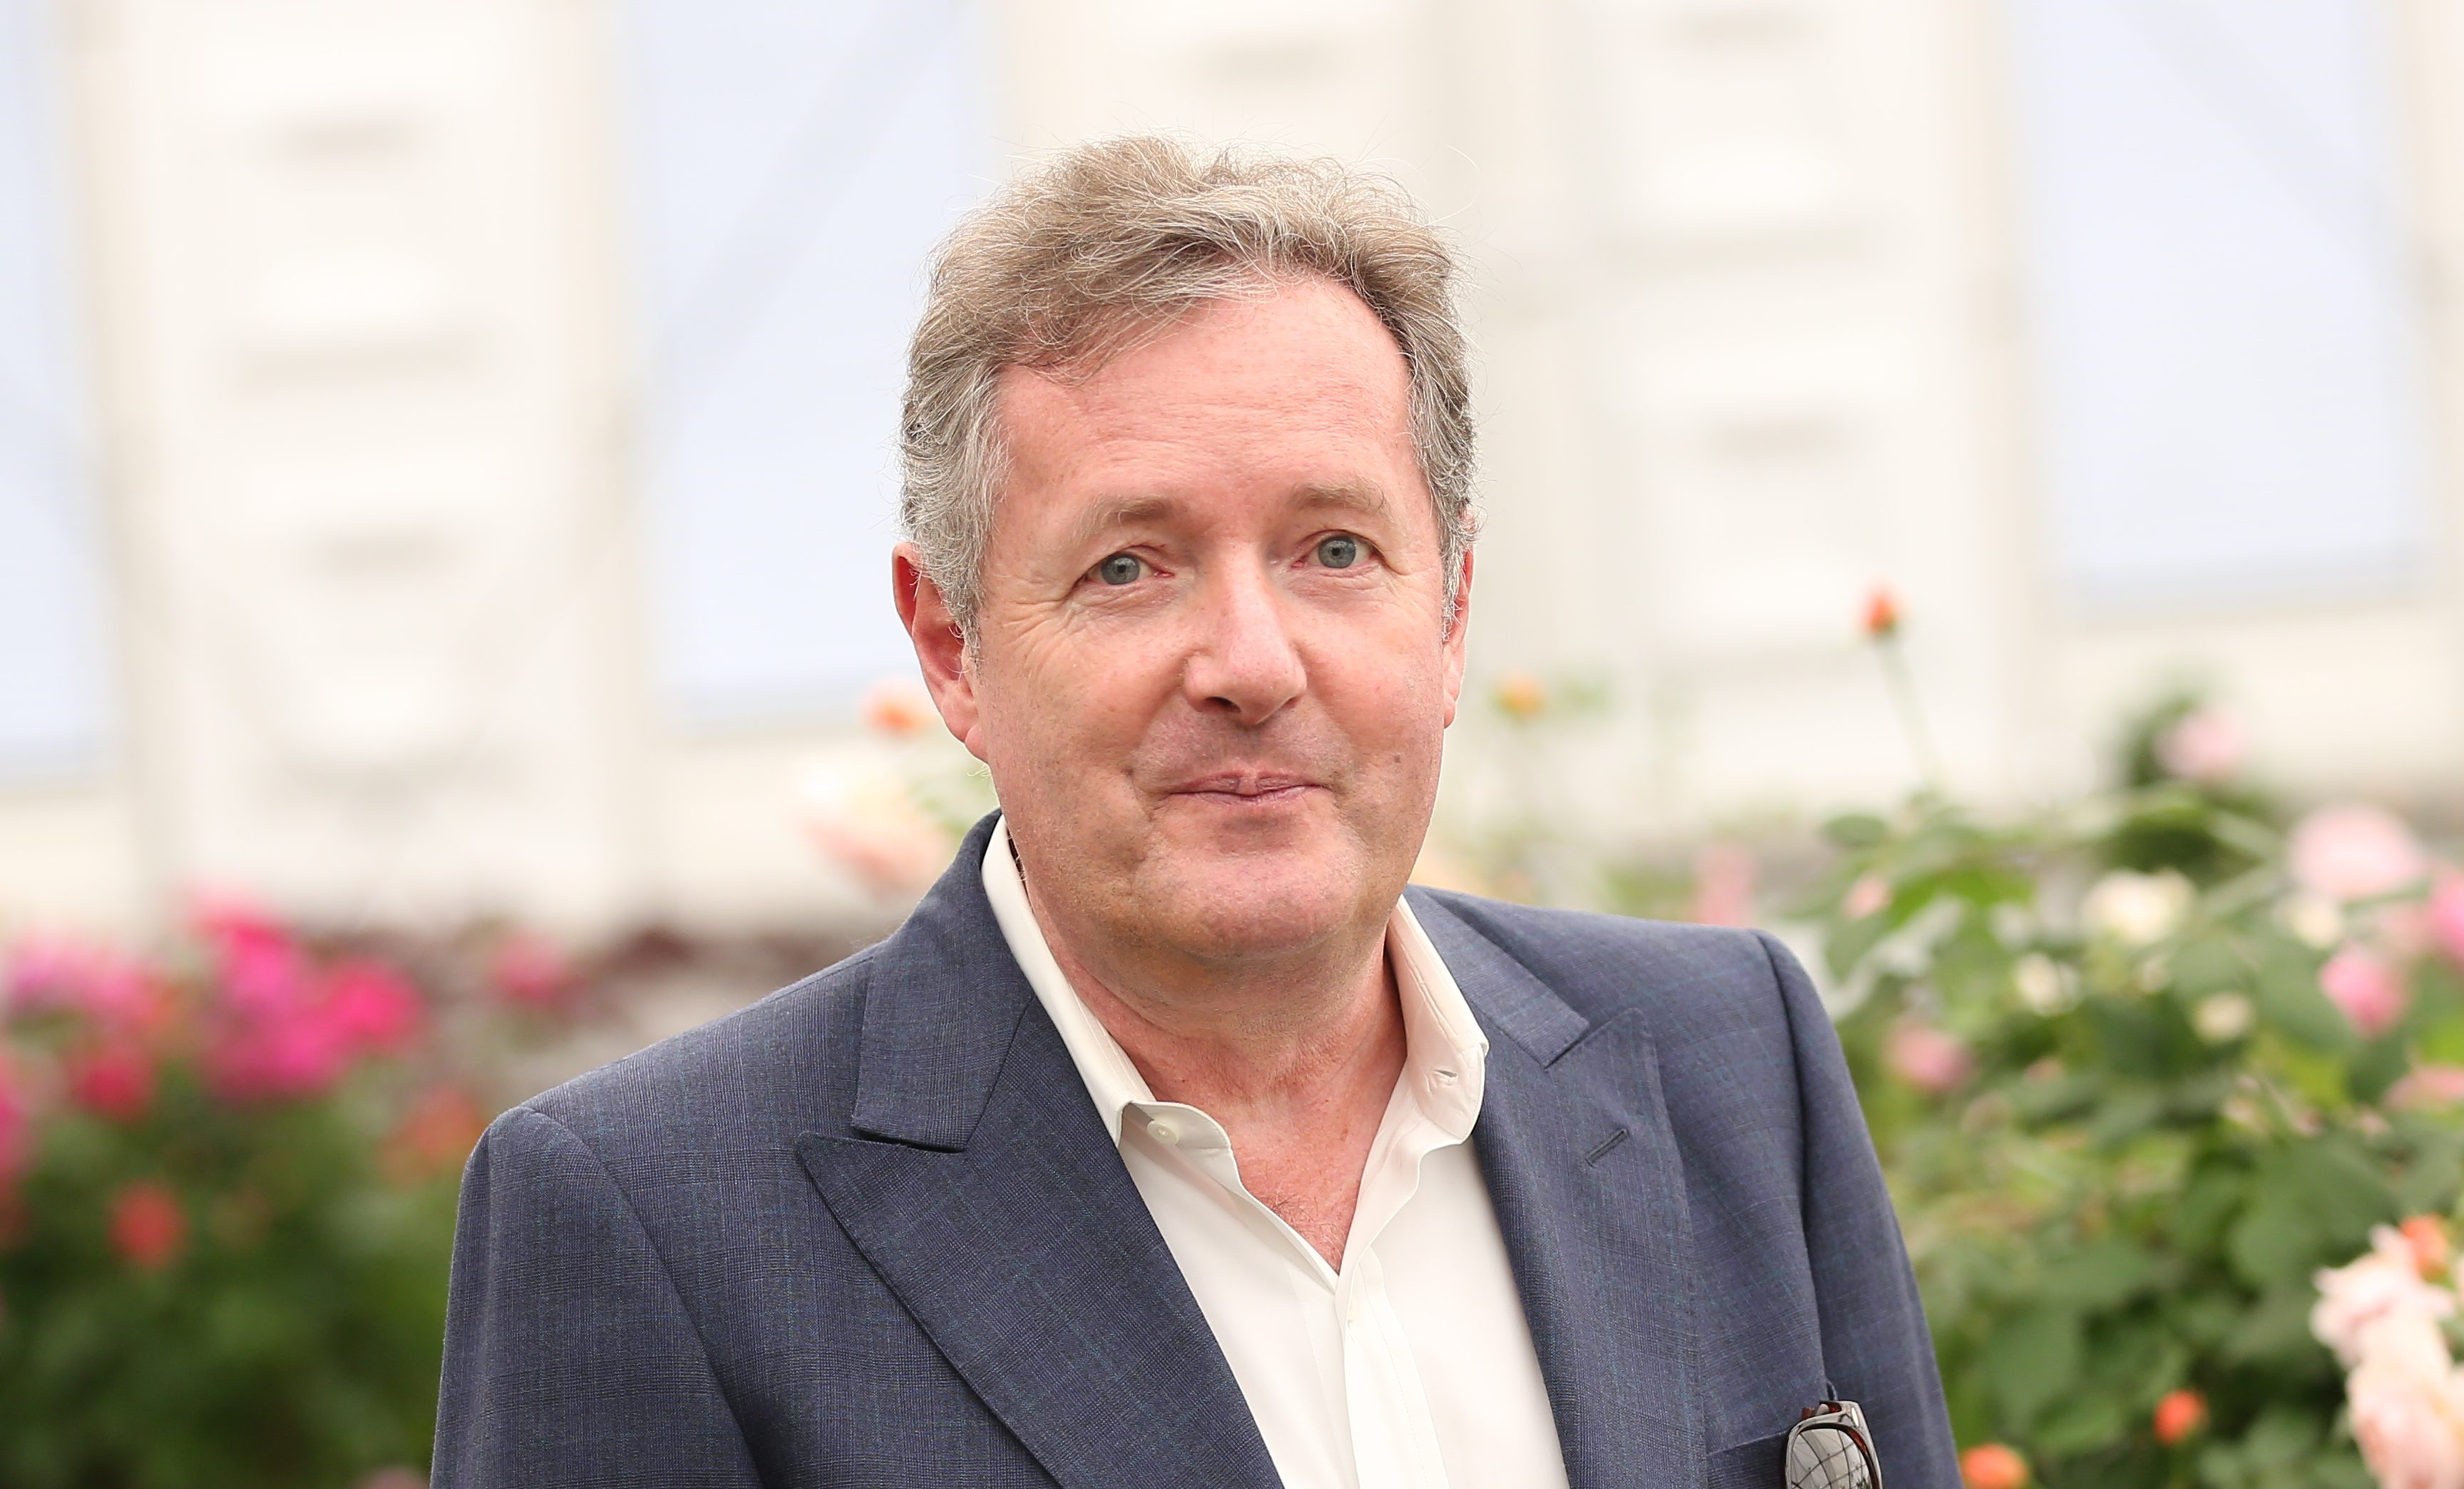 Piers Morgan mocks petition to have him sacked from Good Morning Britain